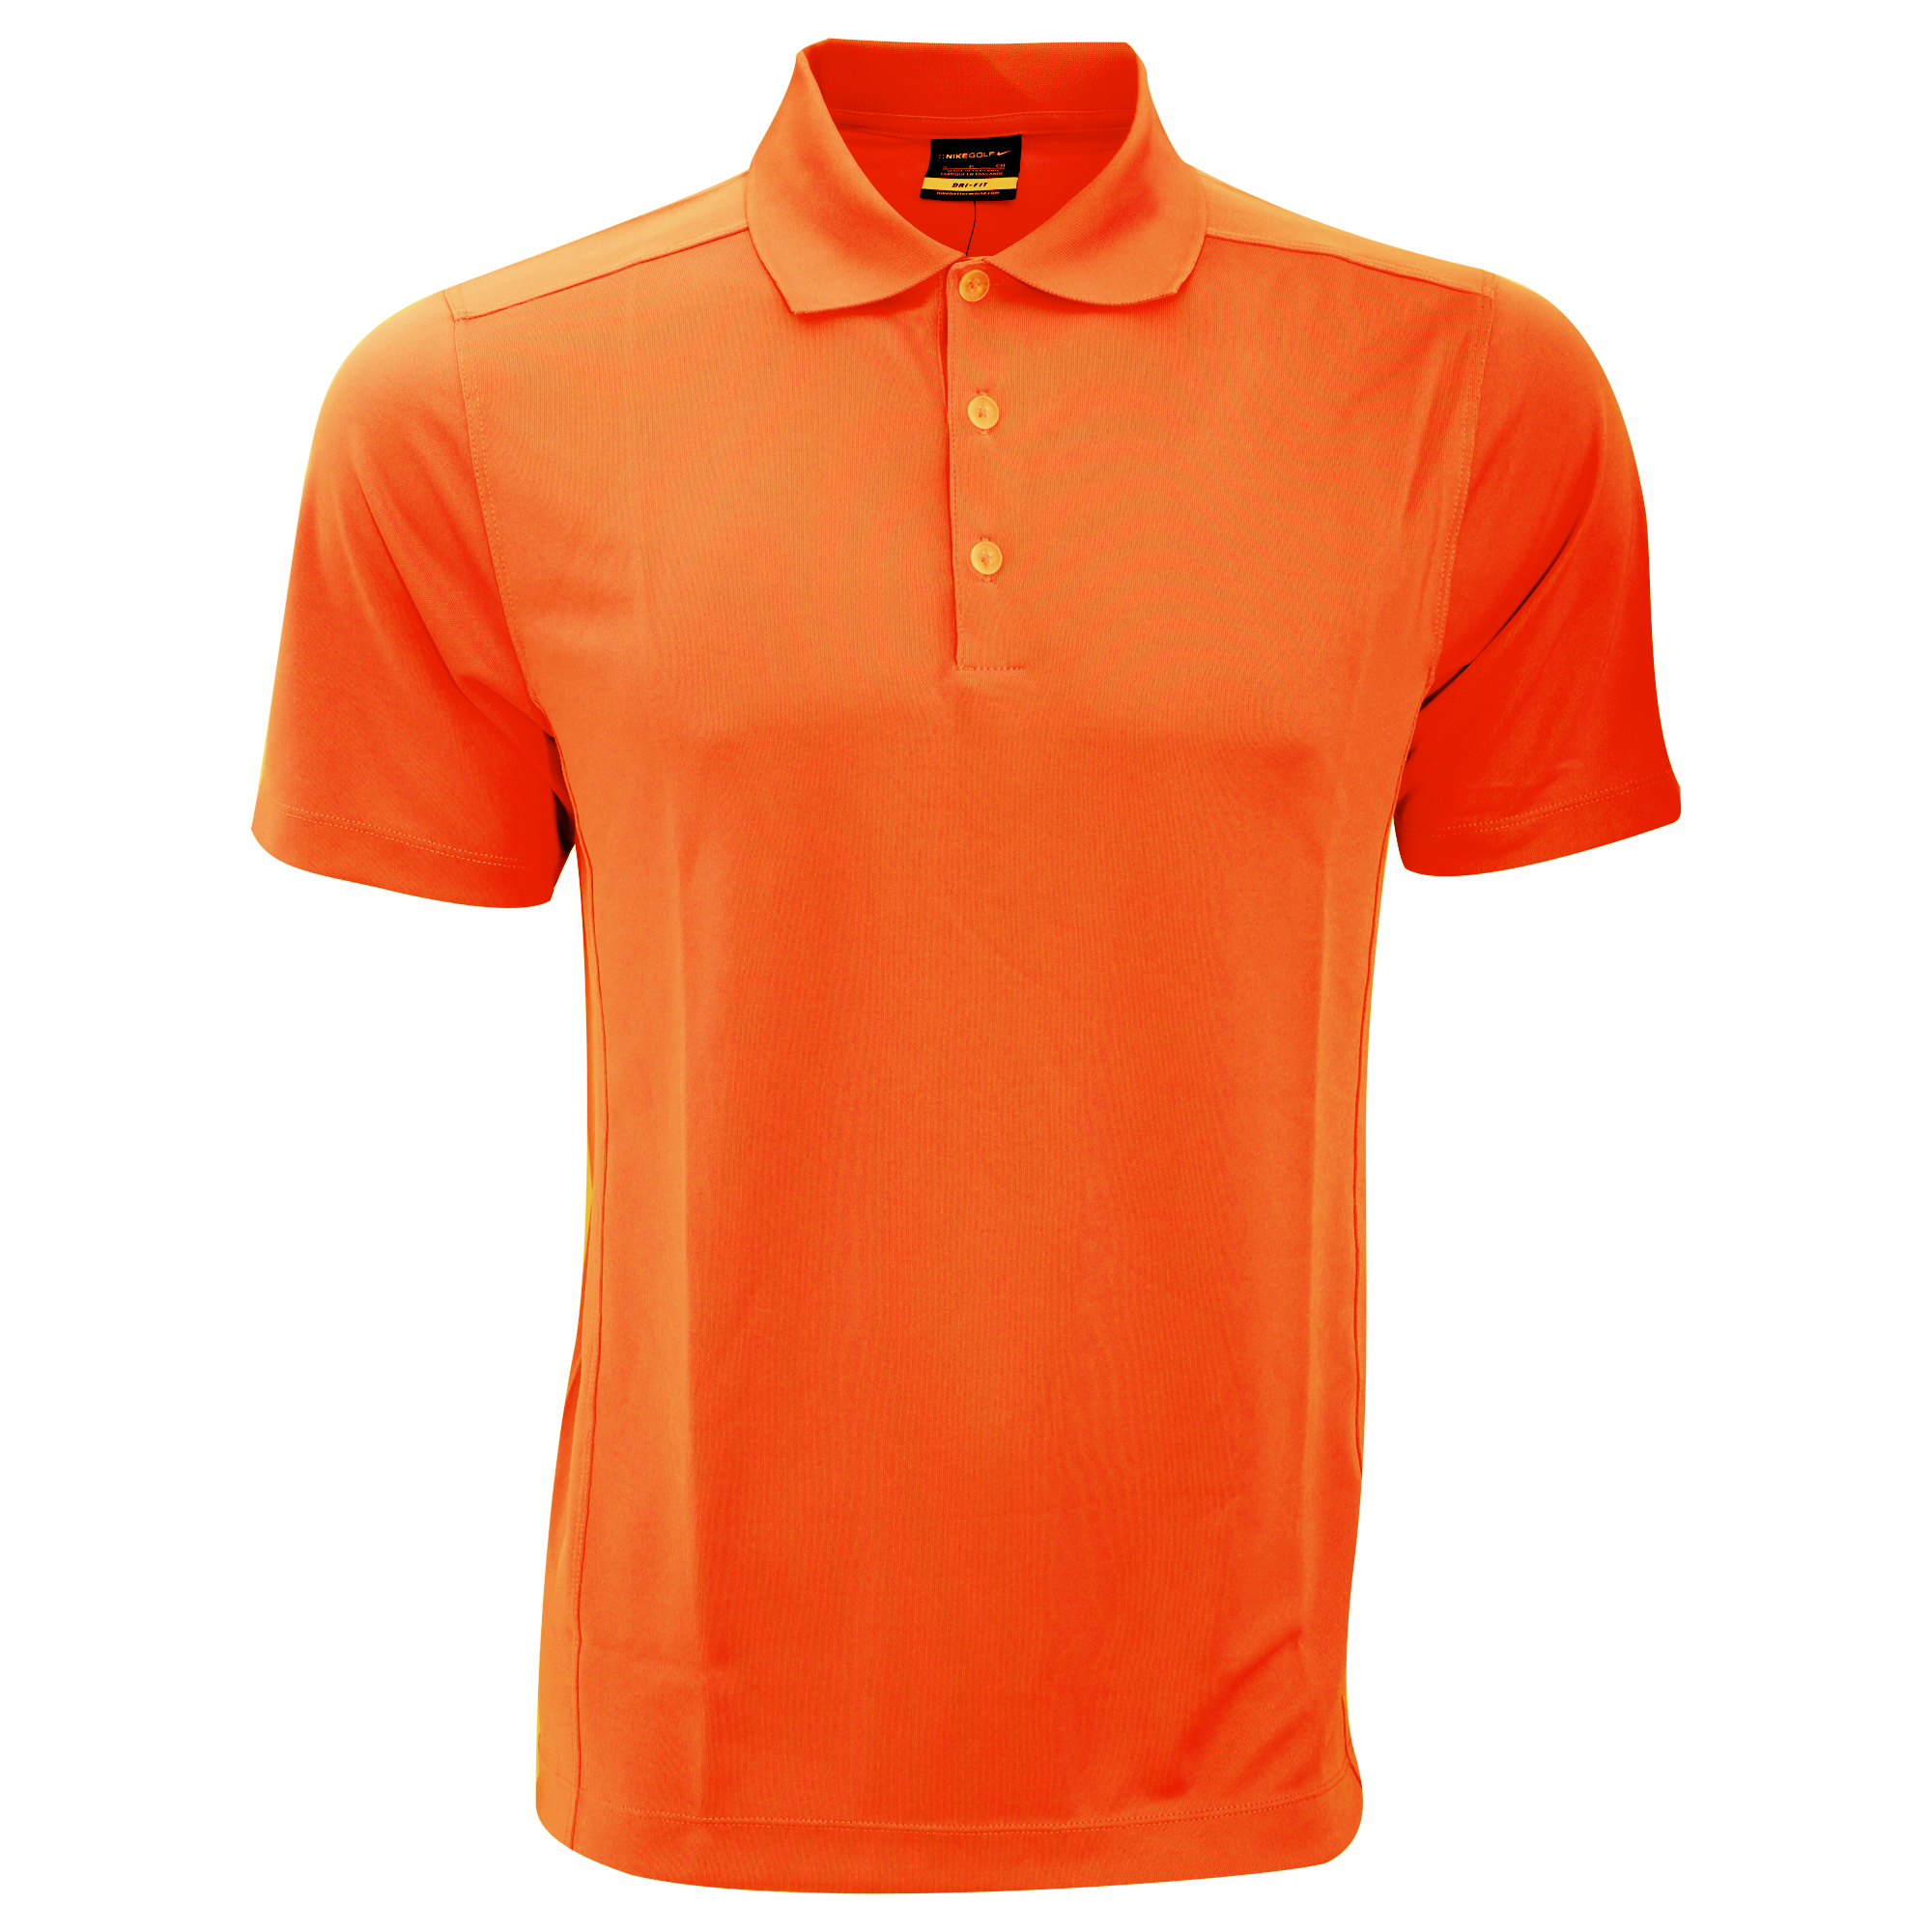 nike mens dry fit sports golf polo shirt 6 colours s m l xl 2xl ebay. Black Bedroom Furniture Sets. Home Design Ideas